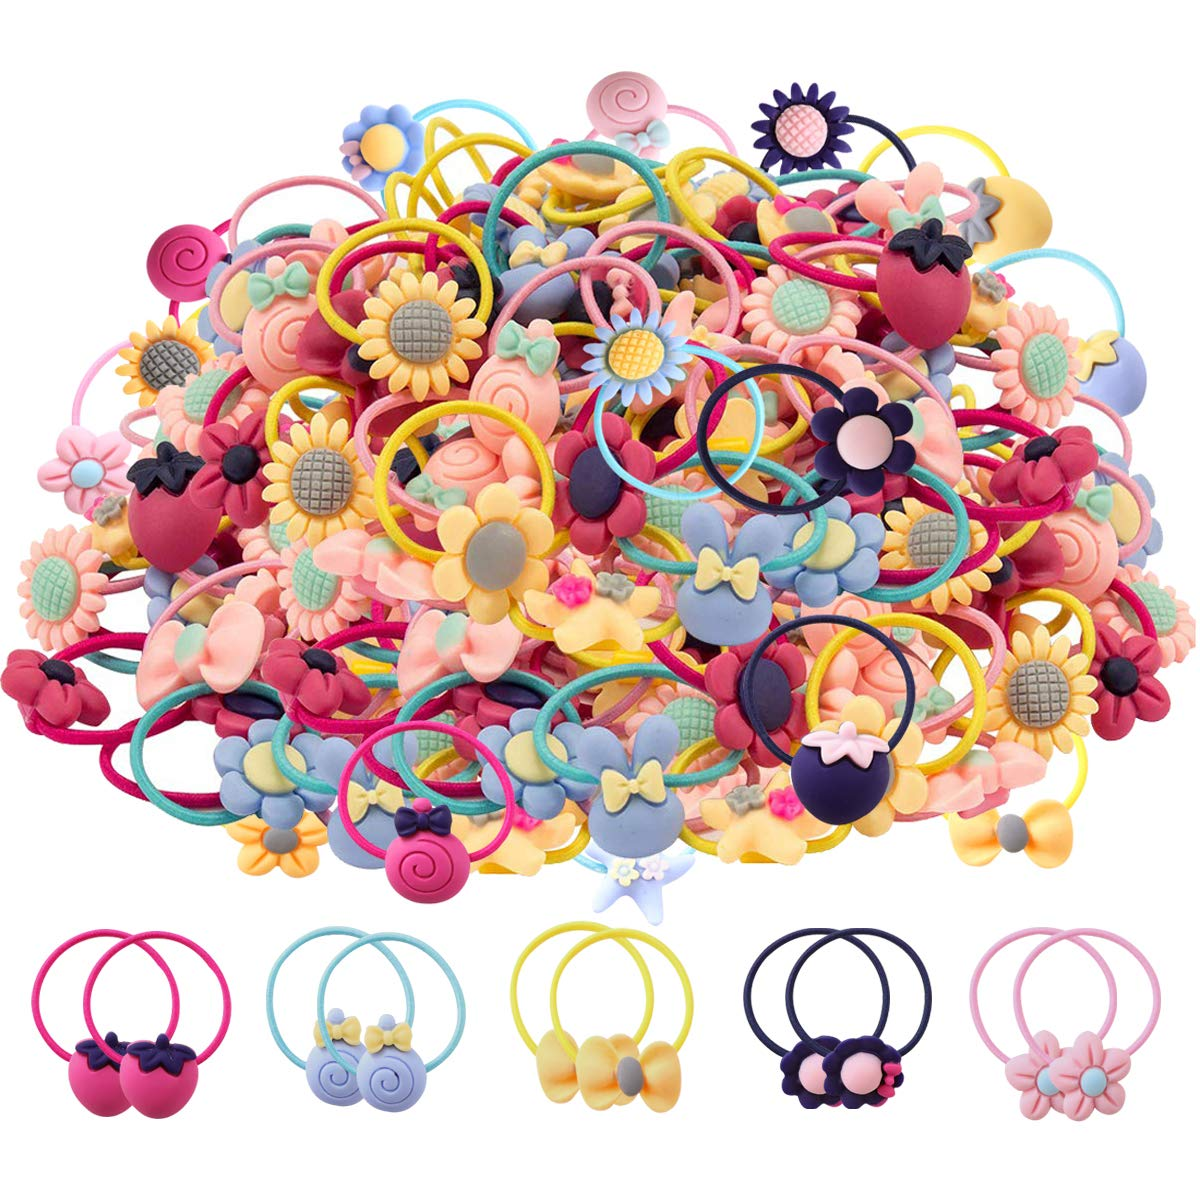 WillingTee 100pcs (50 Pairs) Mix Colors Girls Elastic Hair Ties Soft Rubber Bands Hair Bands Holders Pigtails Hair Accessories for Girls Infants Toddlers Kids Teens and Children